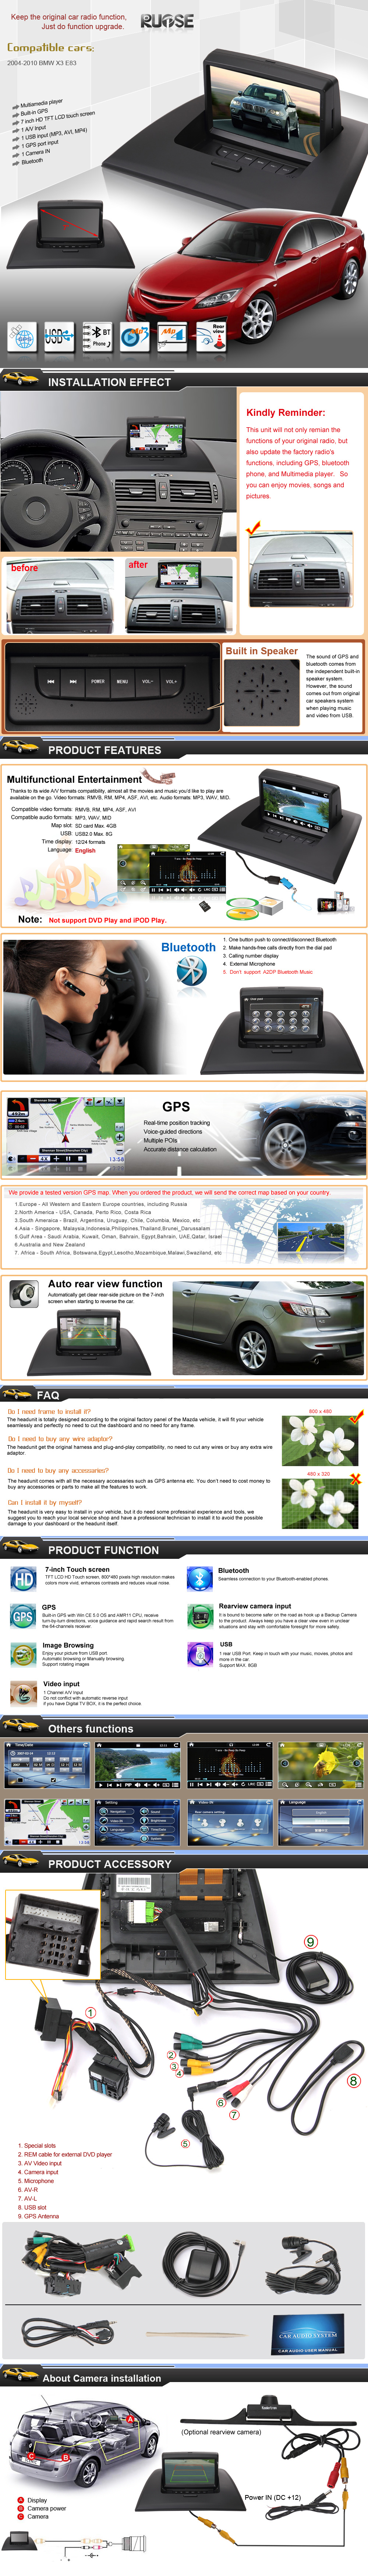 gps navigation system for bmw